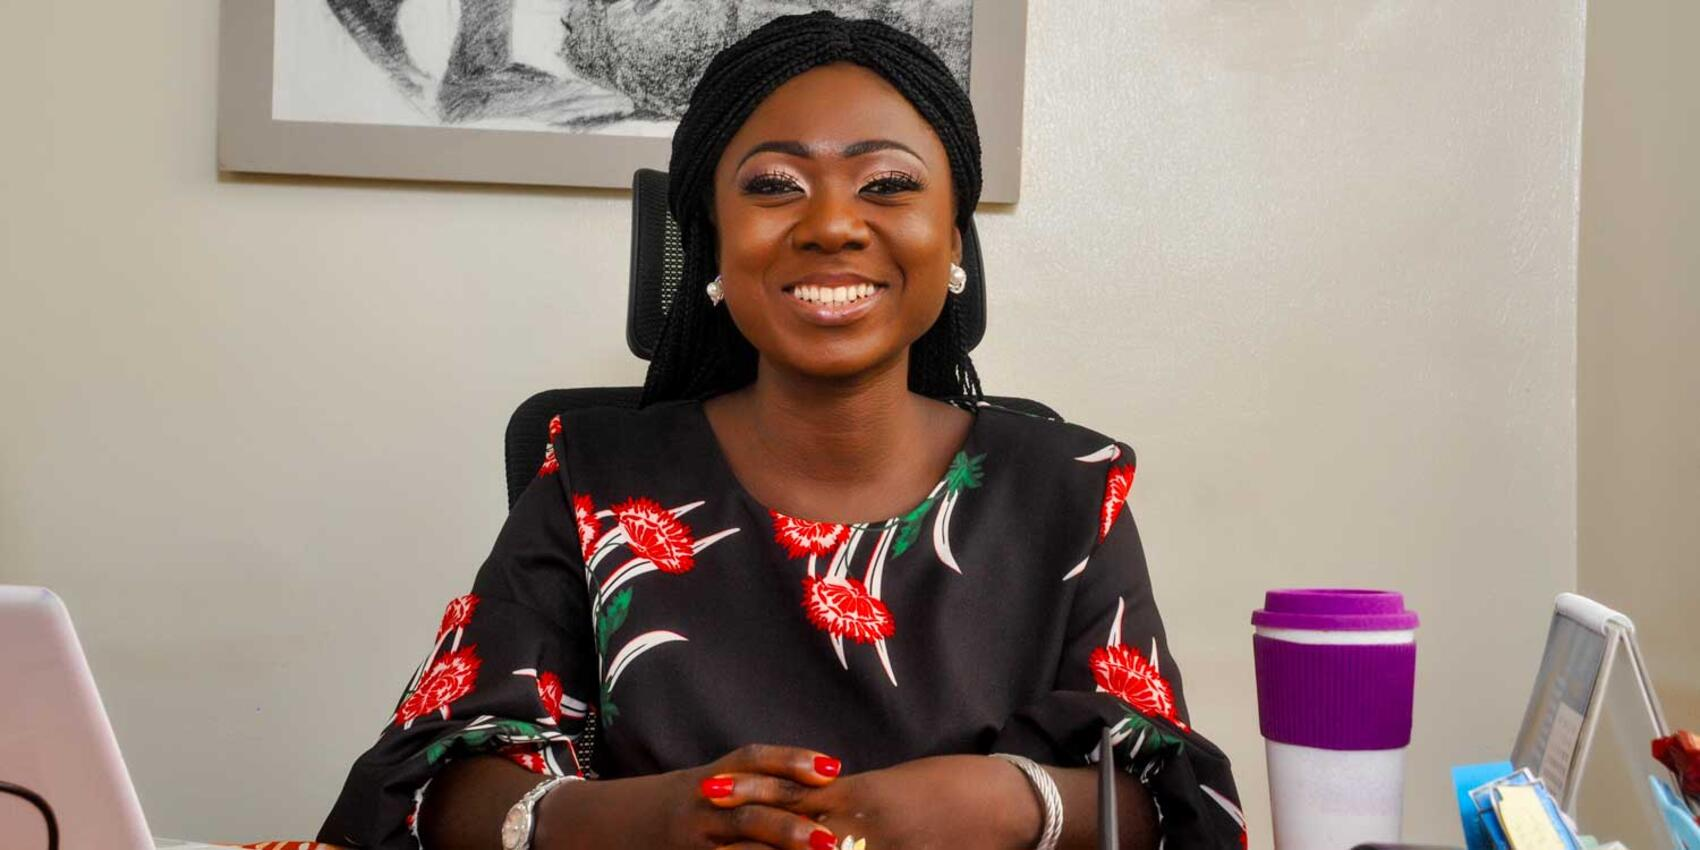 Oluwaseun Sangoleye is CEO of Baby Grubz, a Nigerian social enterprise that she founded when her son's health waned after he refused traditional baby foods and formulas.